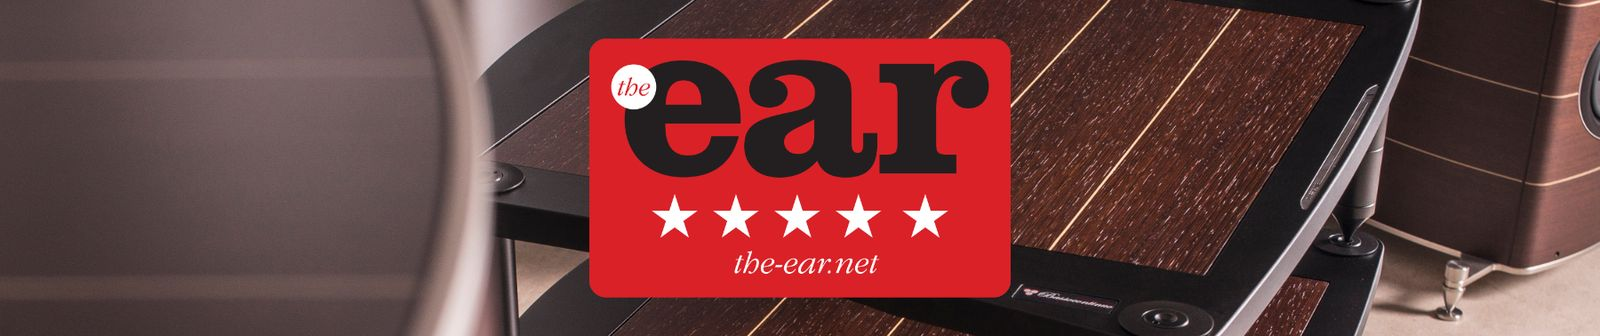 The ear basso review 1